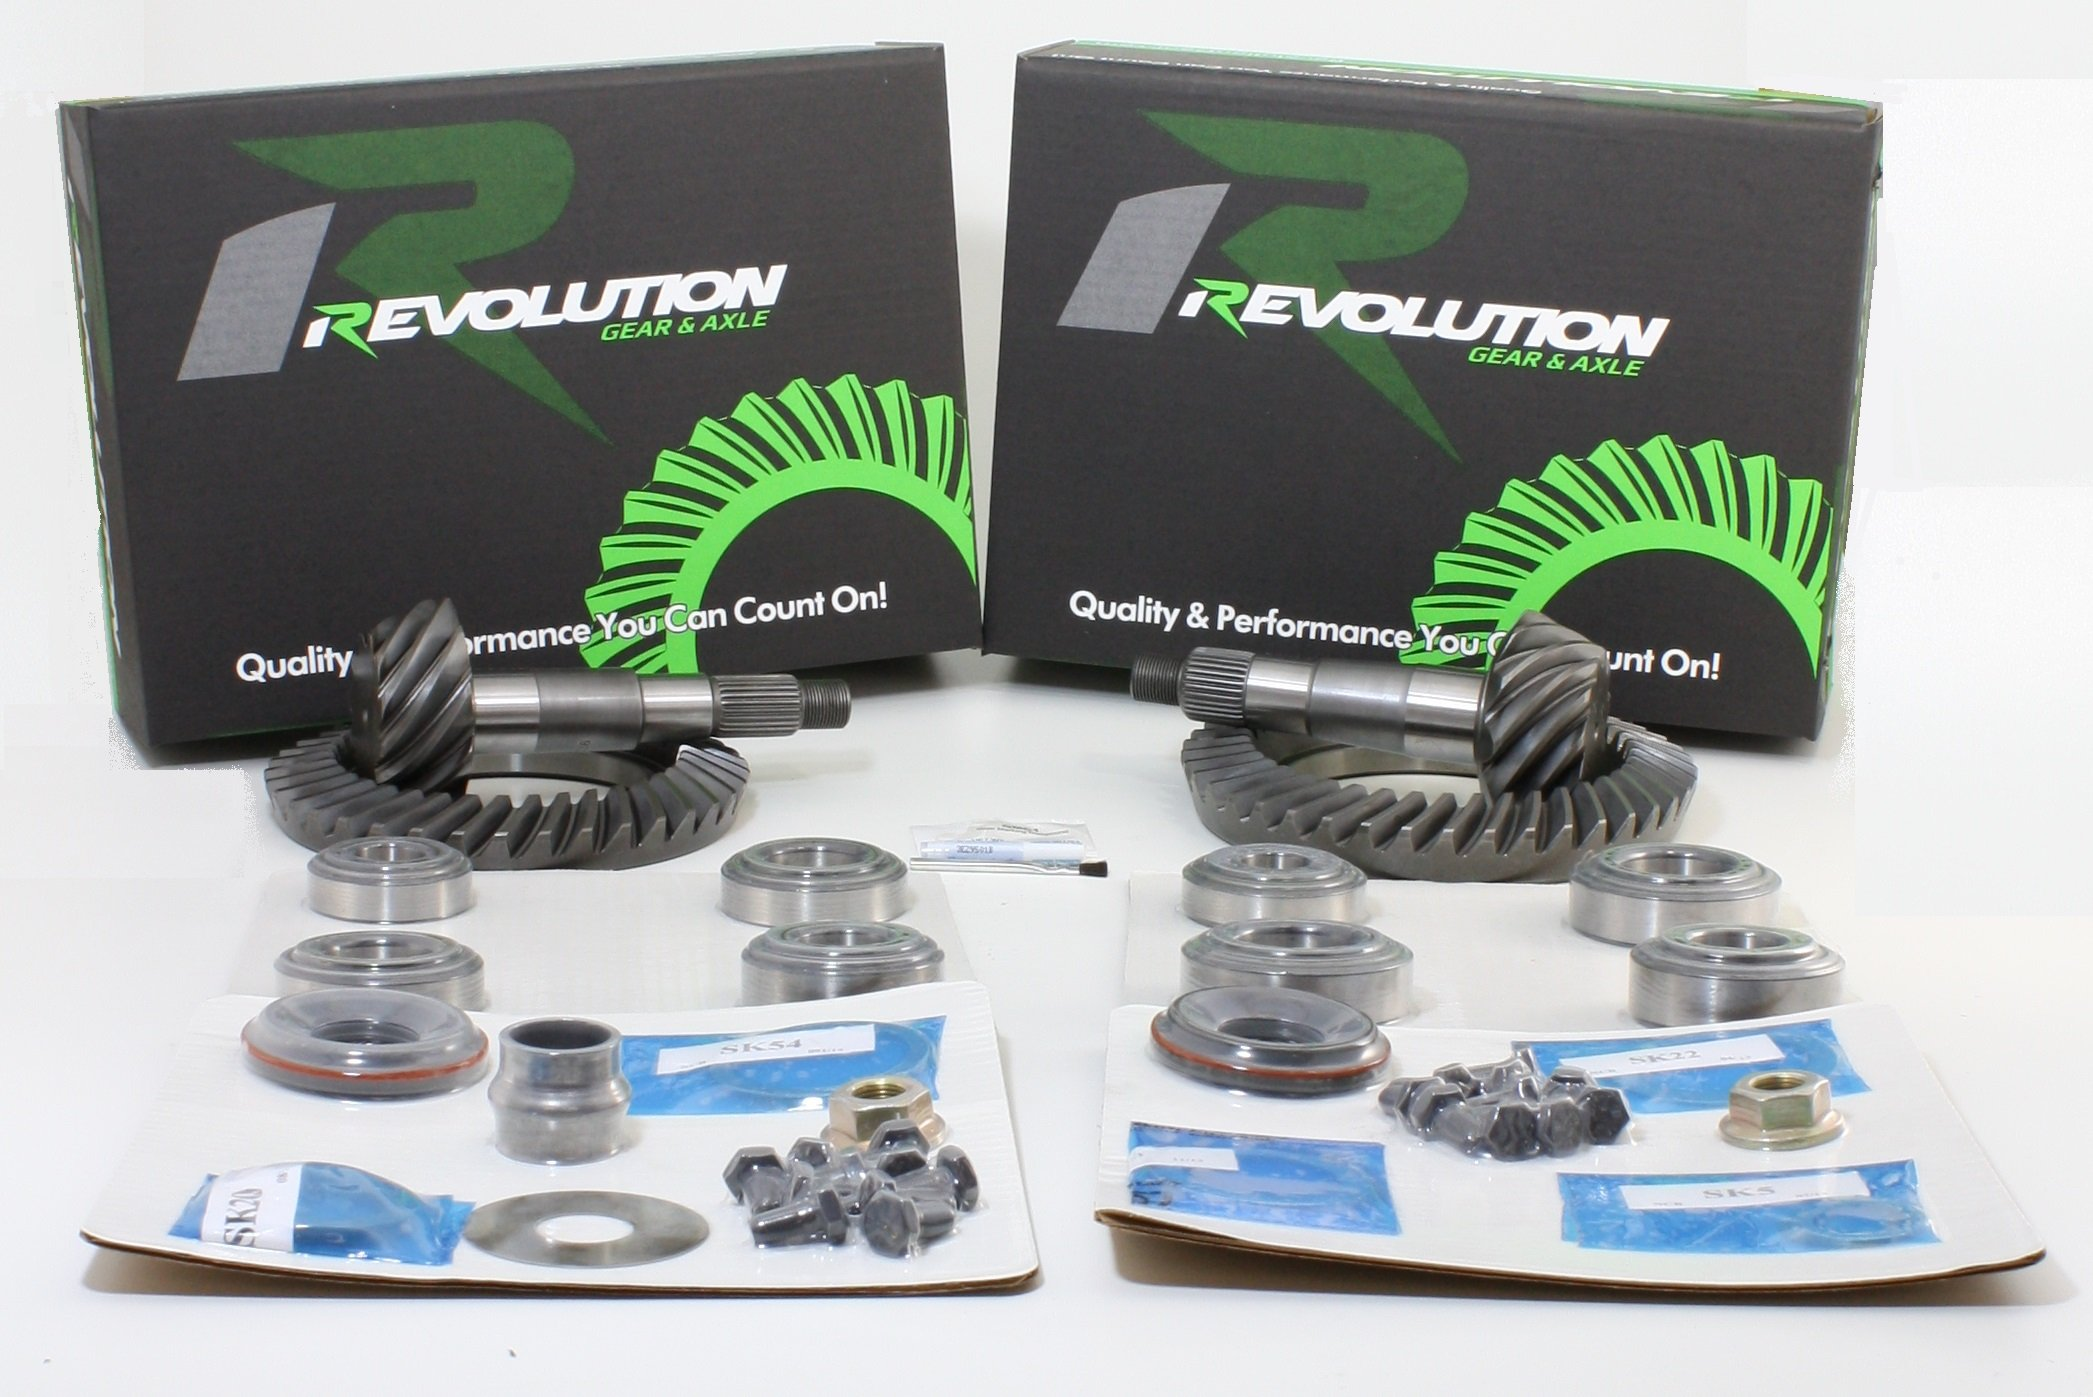 Revolution Gear & Axle - JK Non Rubicon (D44/D30) 4.88 gear package front & rear with master overhaul kits (Front case required for factory 3.21 ratio only)